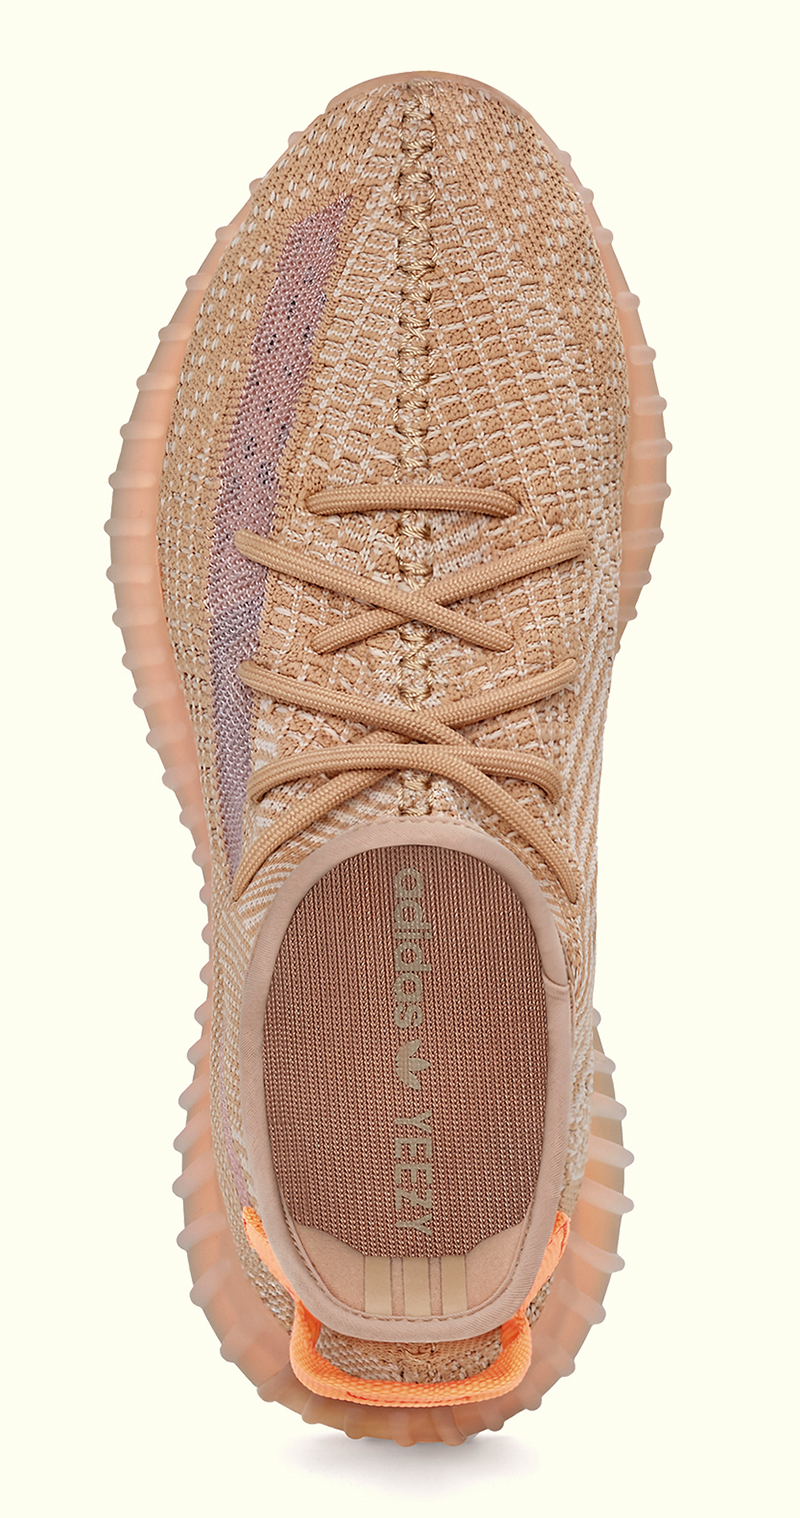 BOOST_350_V2_CLAY_Top_PR72_2500x1878